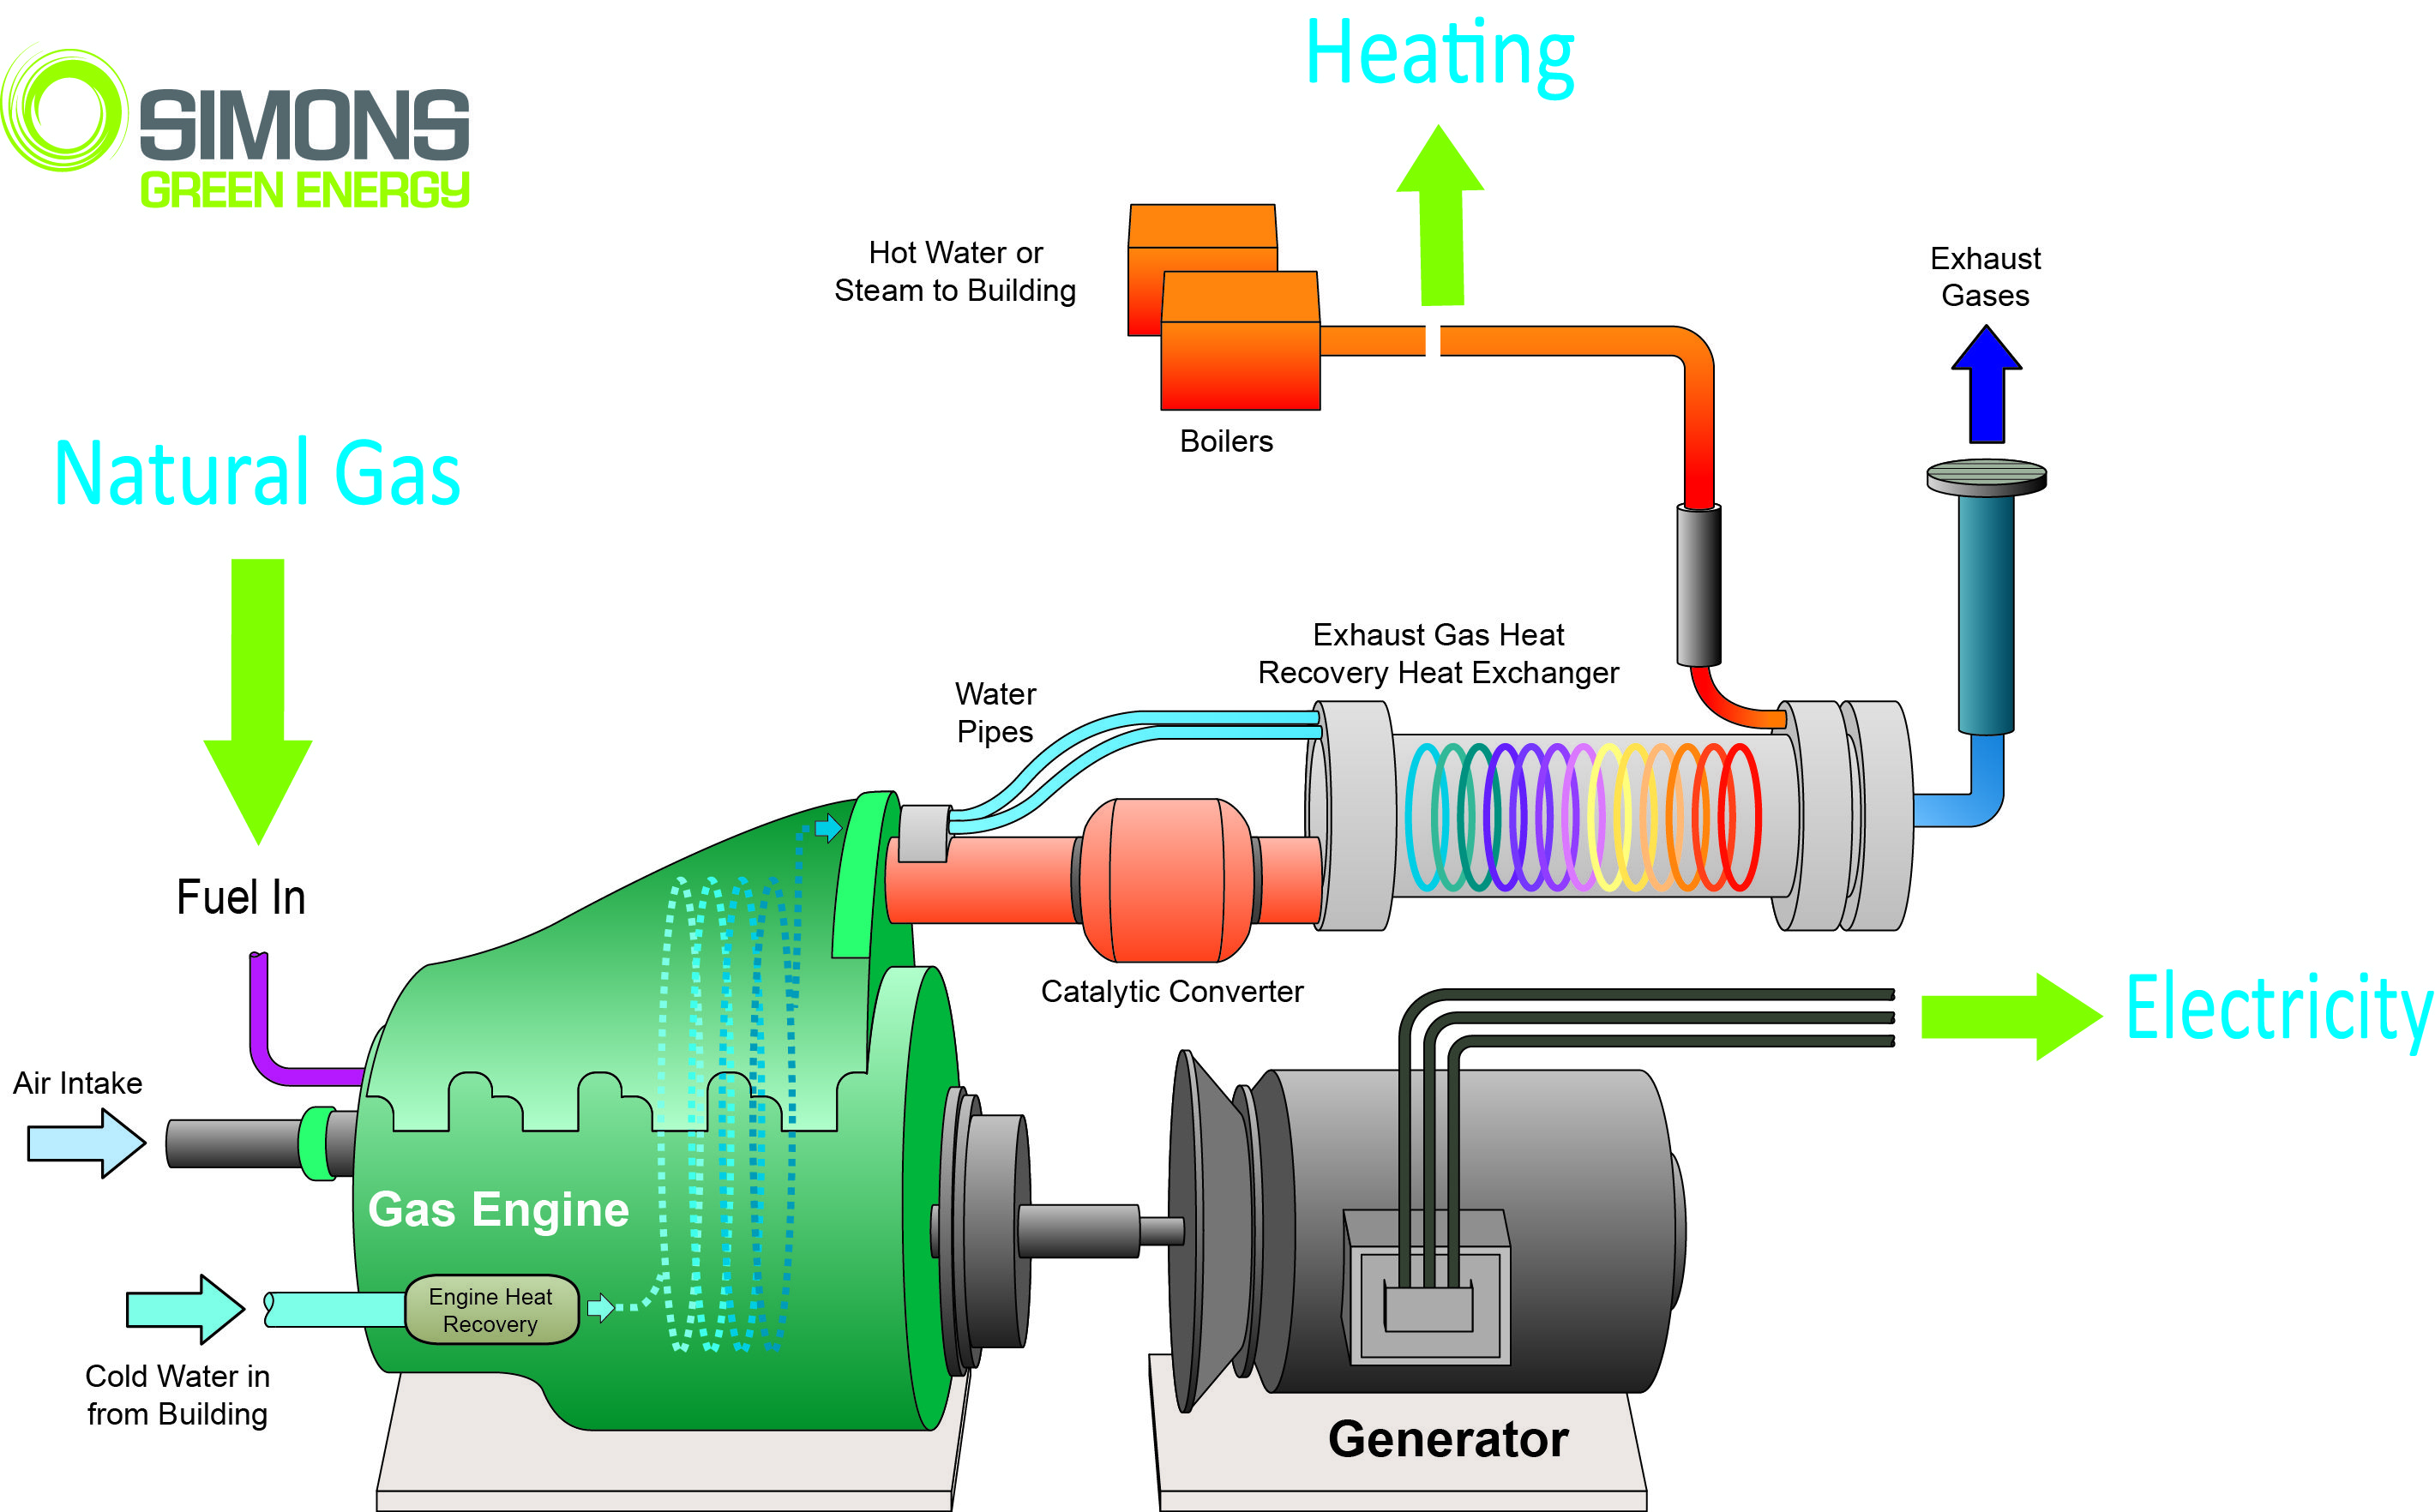 cogeneration diagram new integrate pinterest rh pinterest com Oil Power Plant Diagram Cogeneration Power Plant